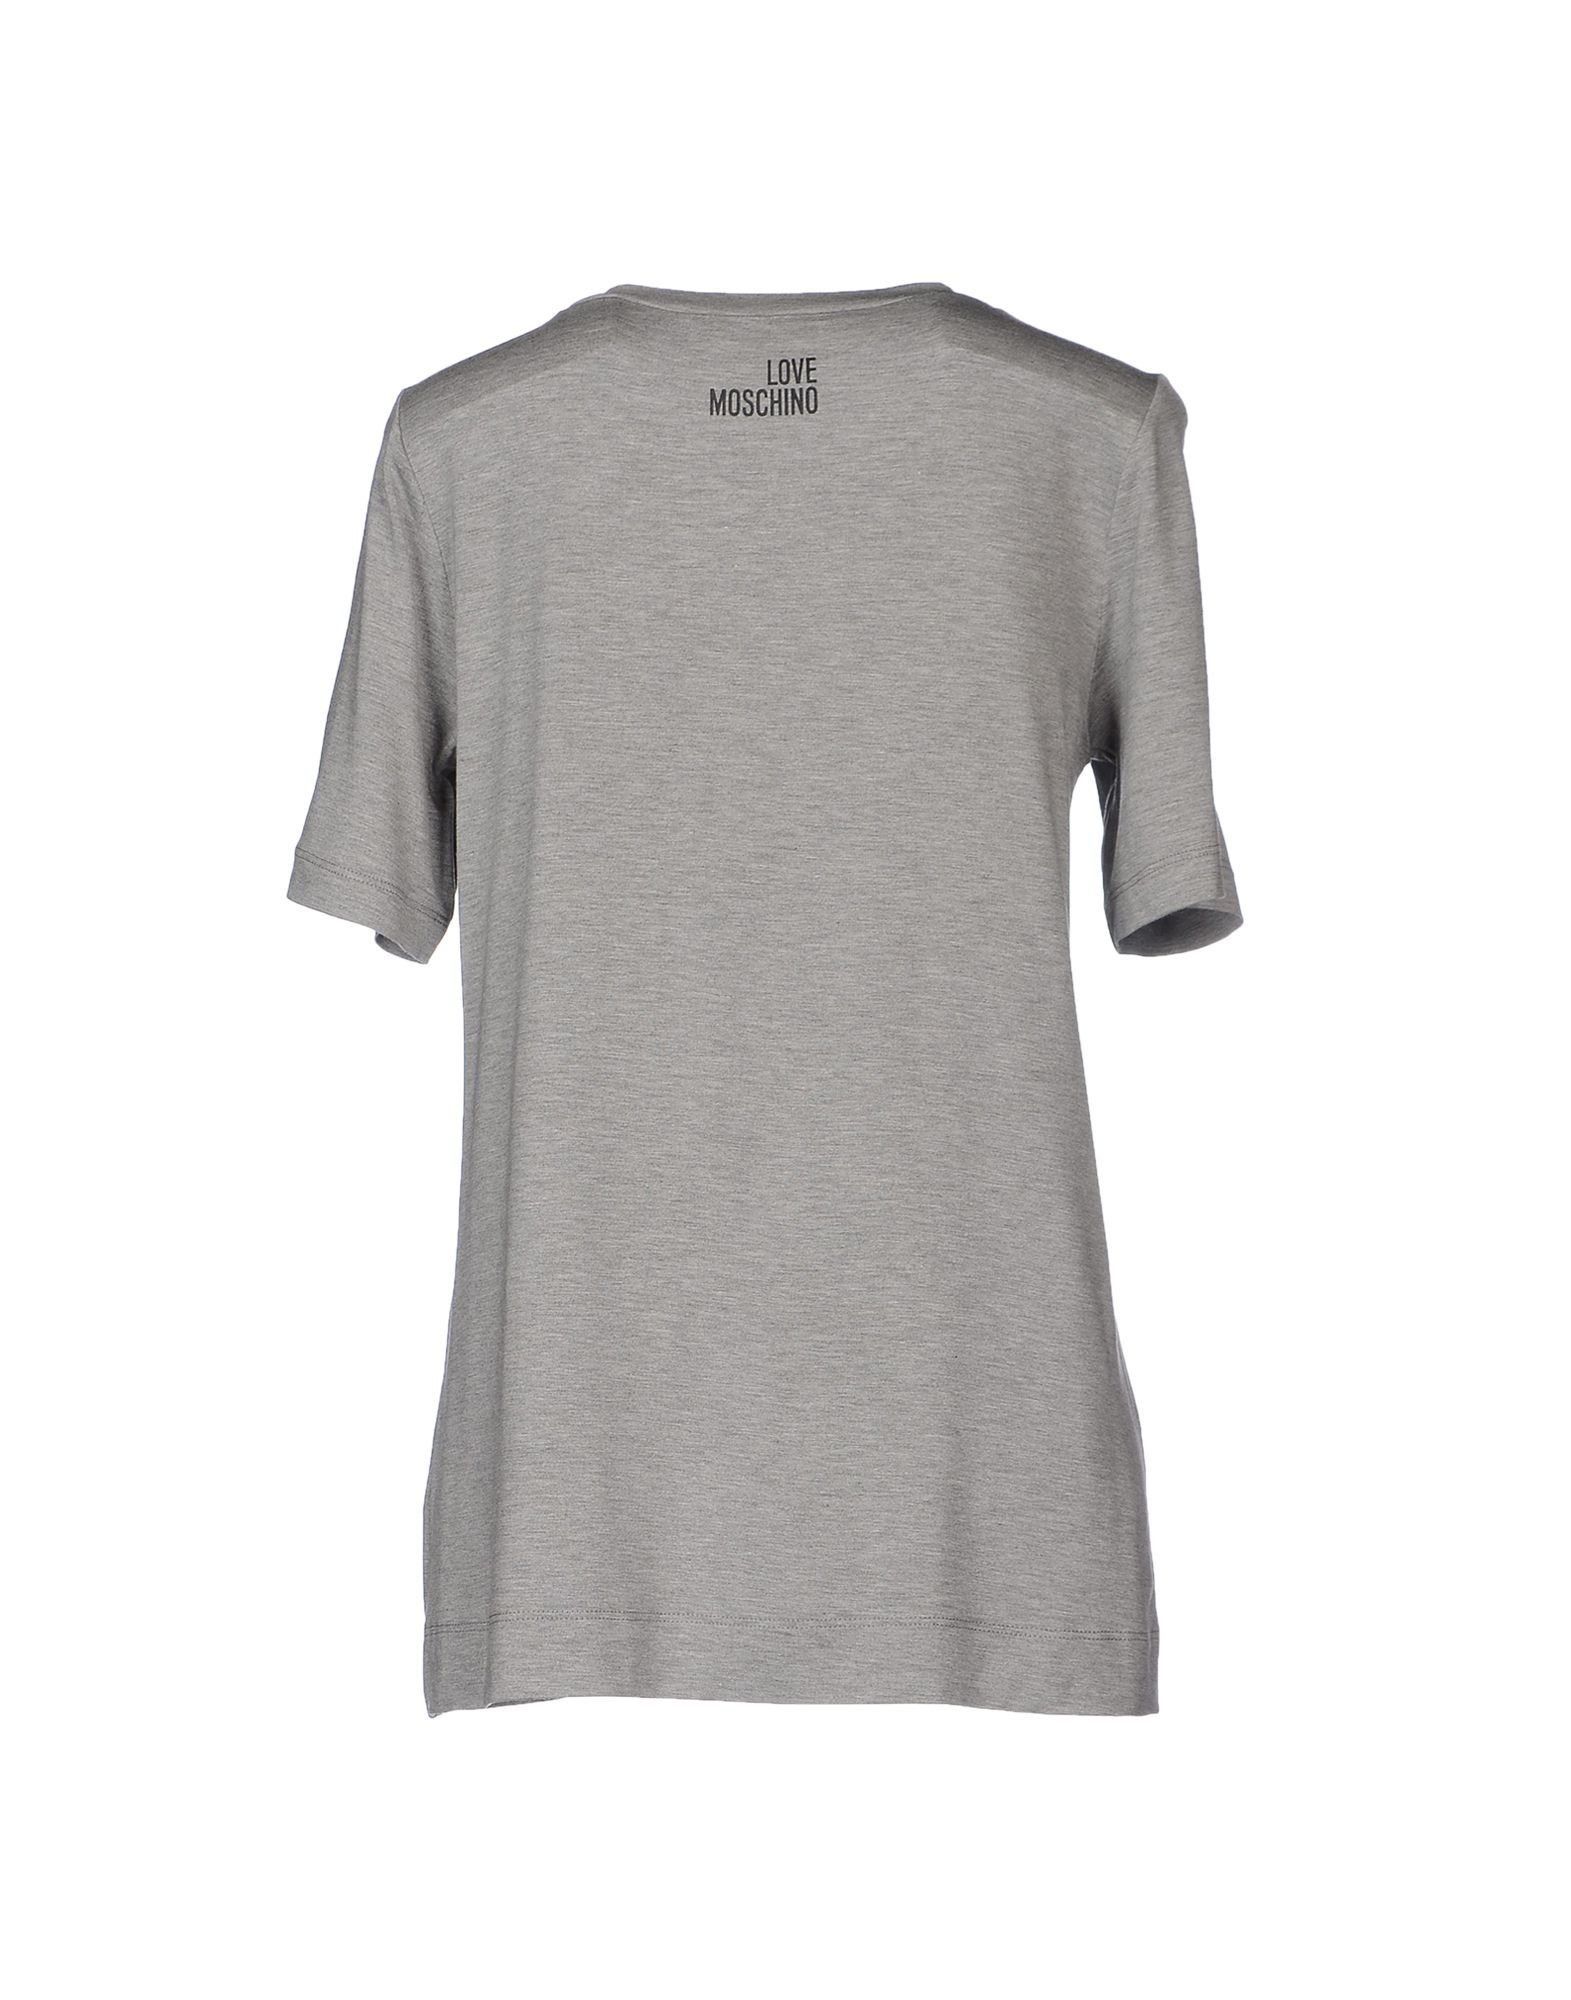 love moschino t shirt in gray lyst. Black Bedroom Furniture Sets. Home Design Ideas